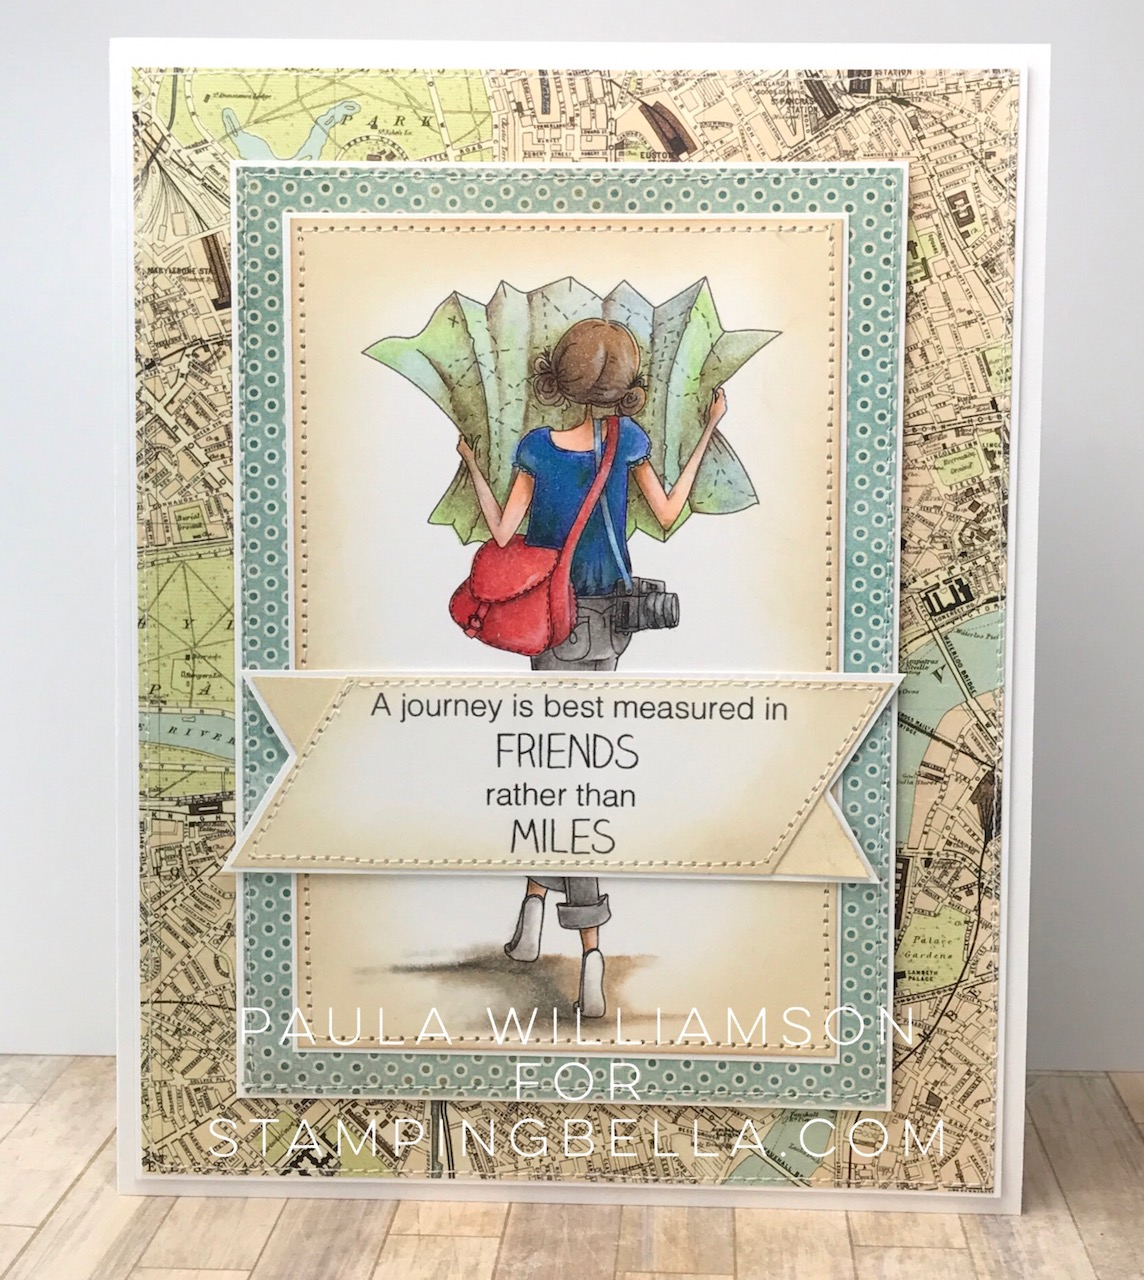 Stamping Bella SUMMER 2017 RELEASE- RUBBER STAMP : UPTOWN GIRL MELINDA has a MAP card by Paula Williamson